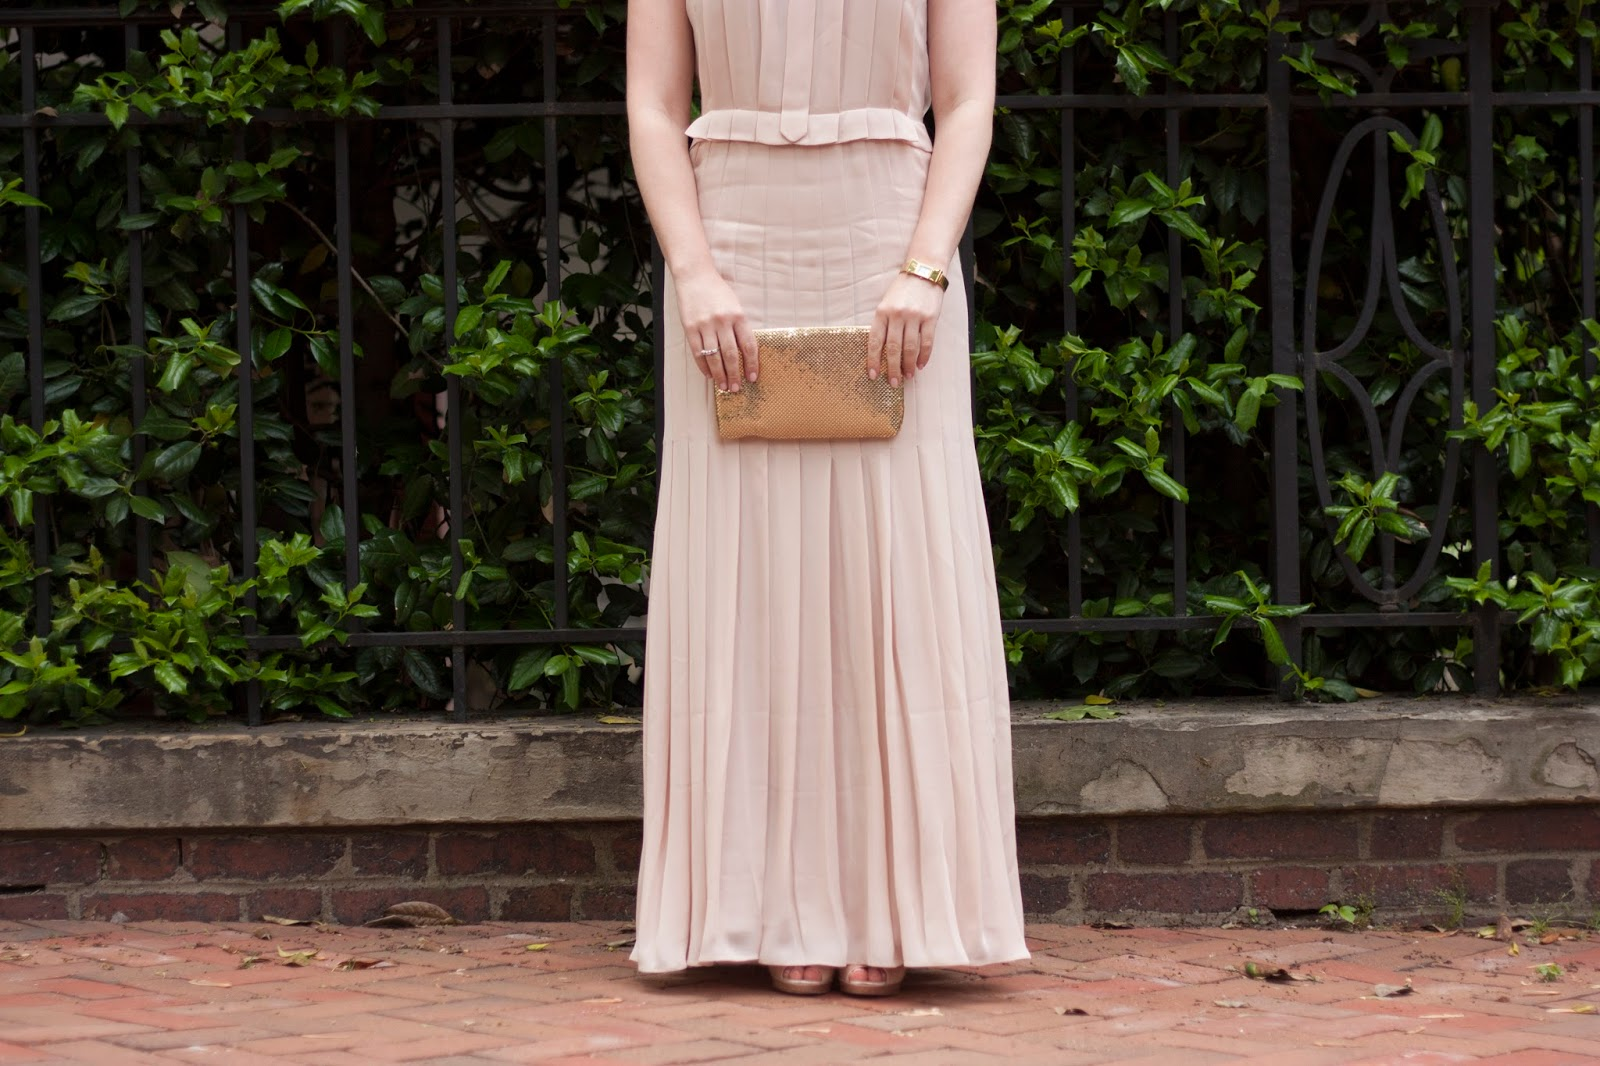 Dress code for wedding garden party - Dress Tory Burch Tatum Dress Winter 2013 Similar Here And Here Watch Kate Spade Bag Whiting Davis Vintage Similar Here Cocktail Attire